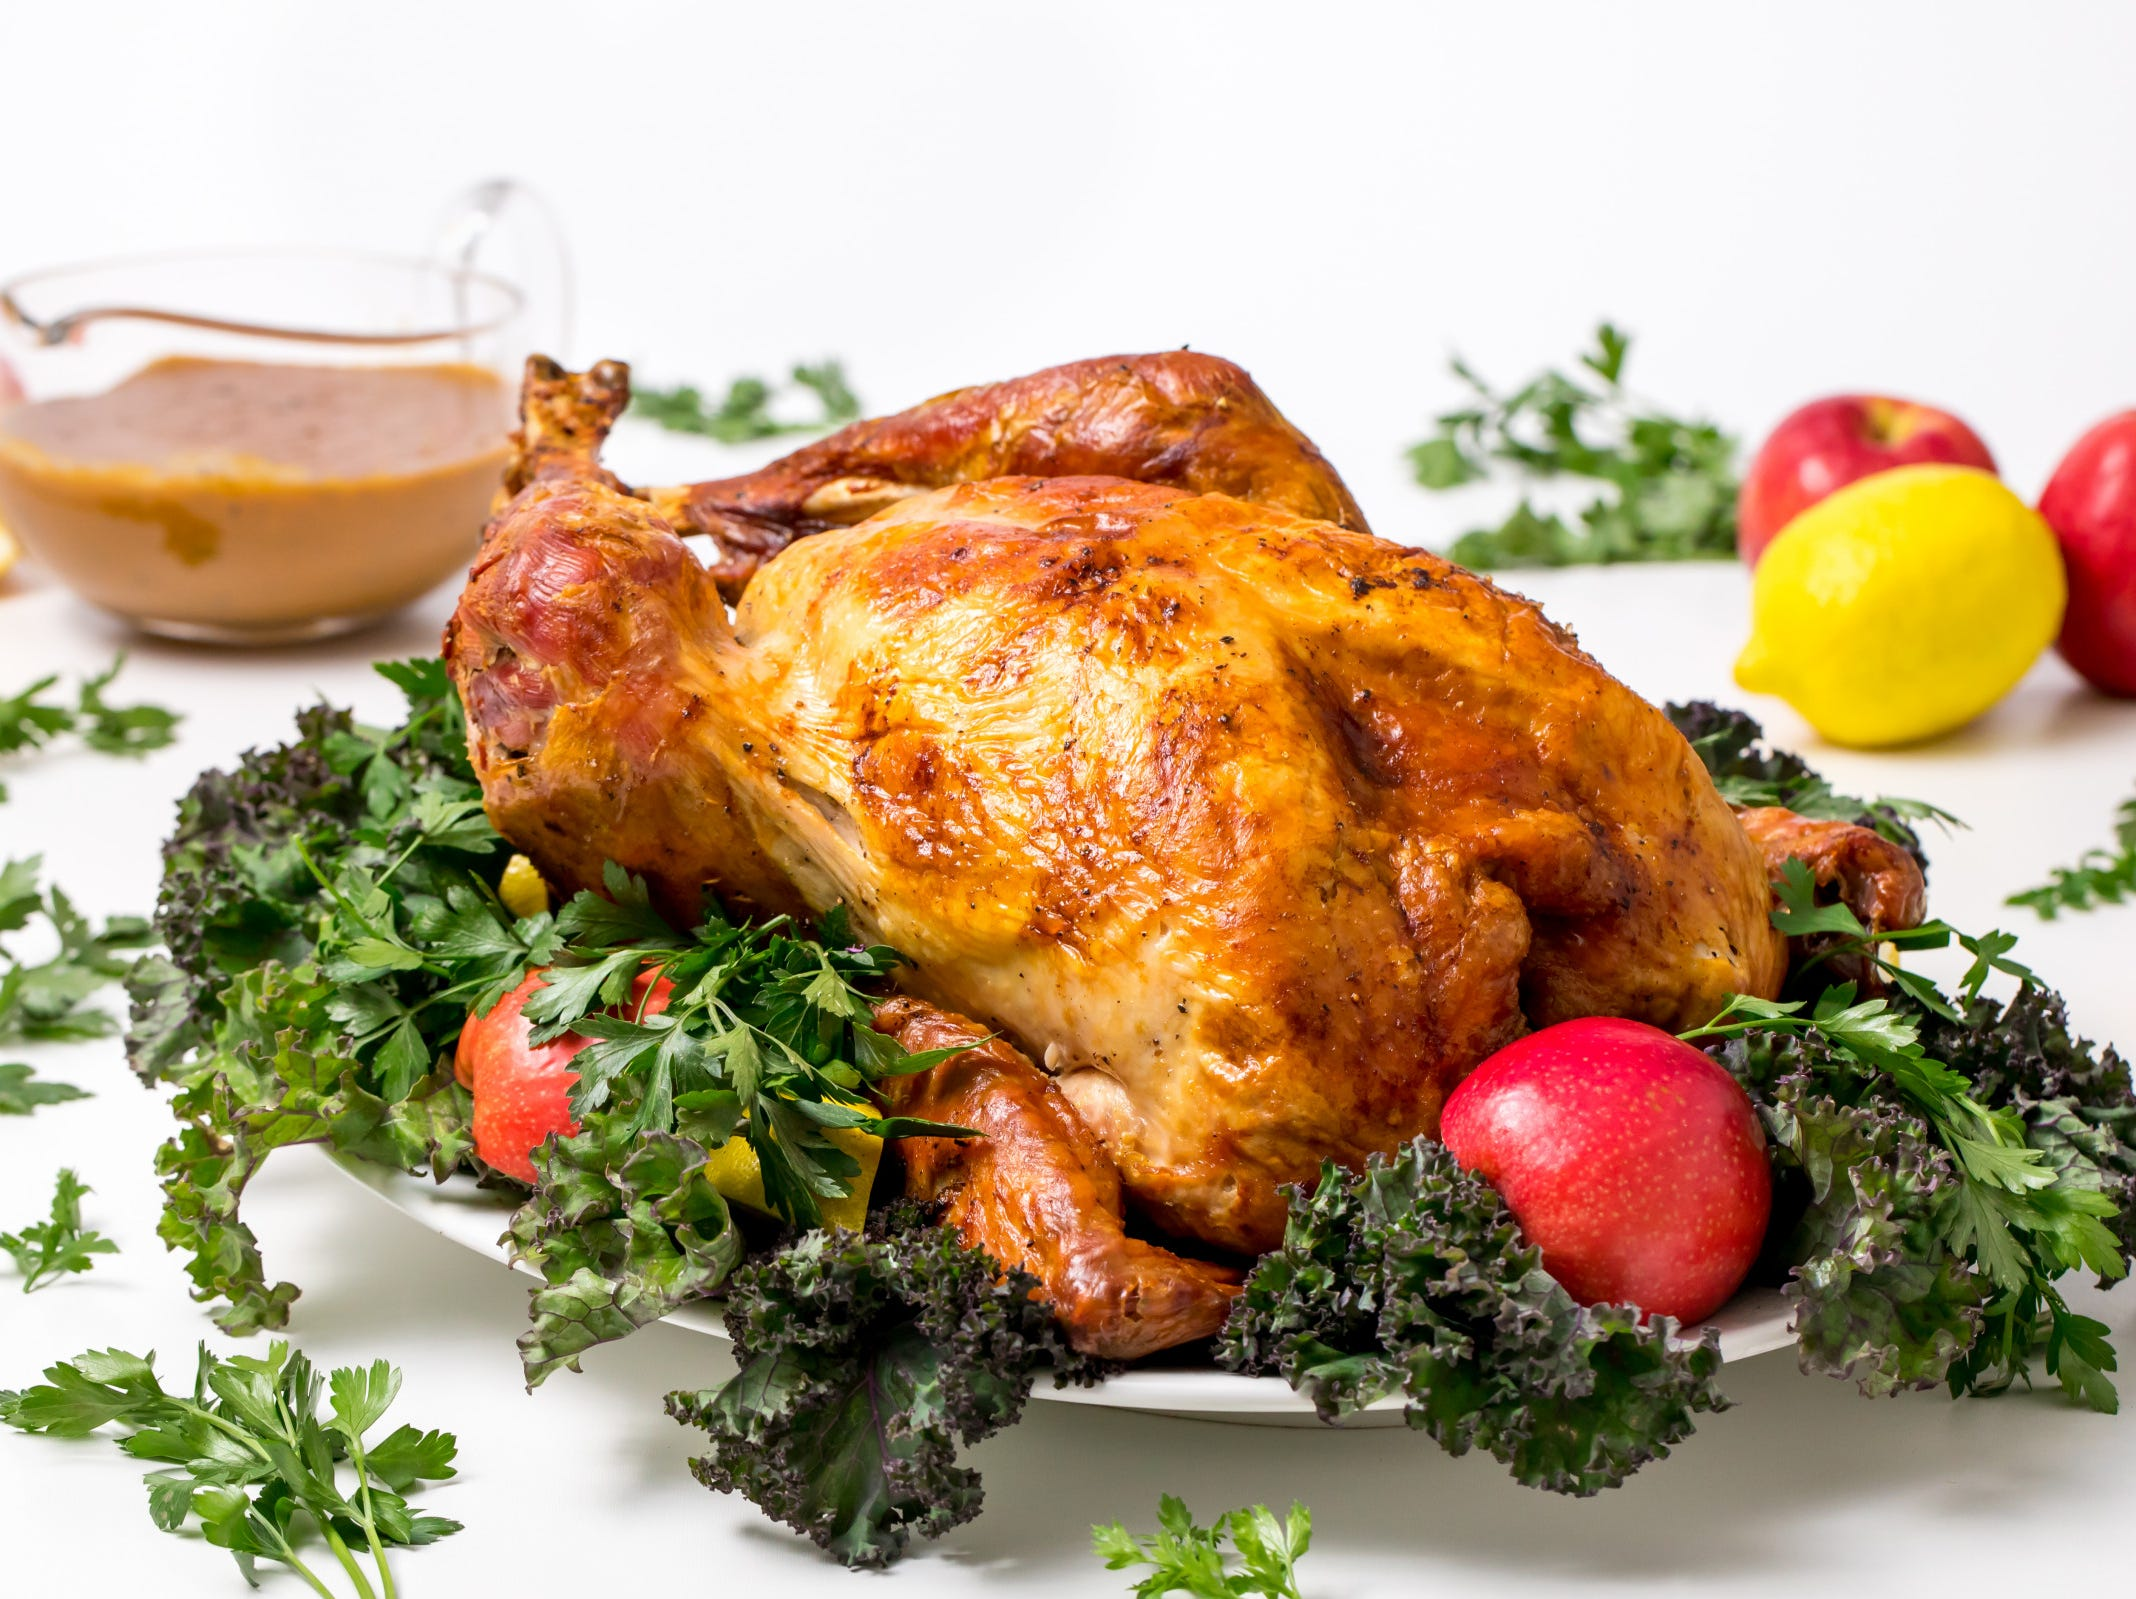 When enthusiasm wanes for the traditional roast turkey recipe, reach for the tried and true recipes of renowned food greats. This James Beard roasted turkey recipe, inspired by James Beard, honors the great American cook's gourmet-style approach to the Thanksgiving bird.